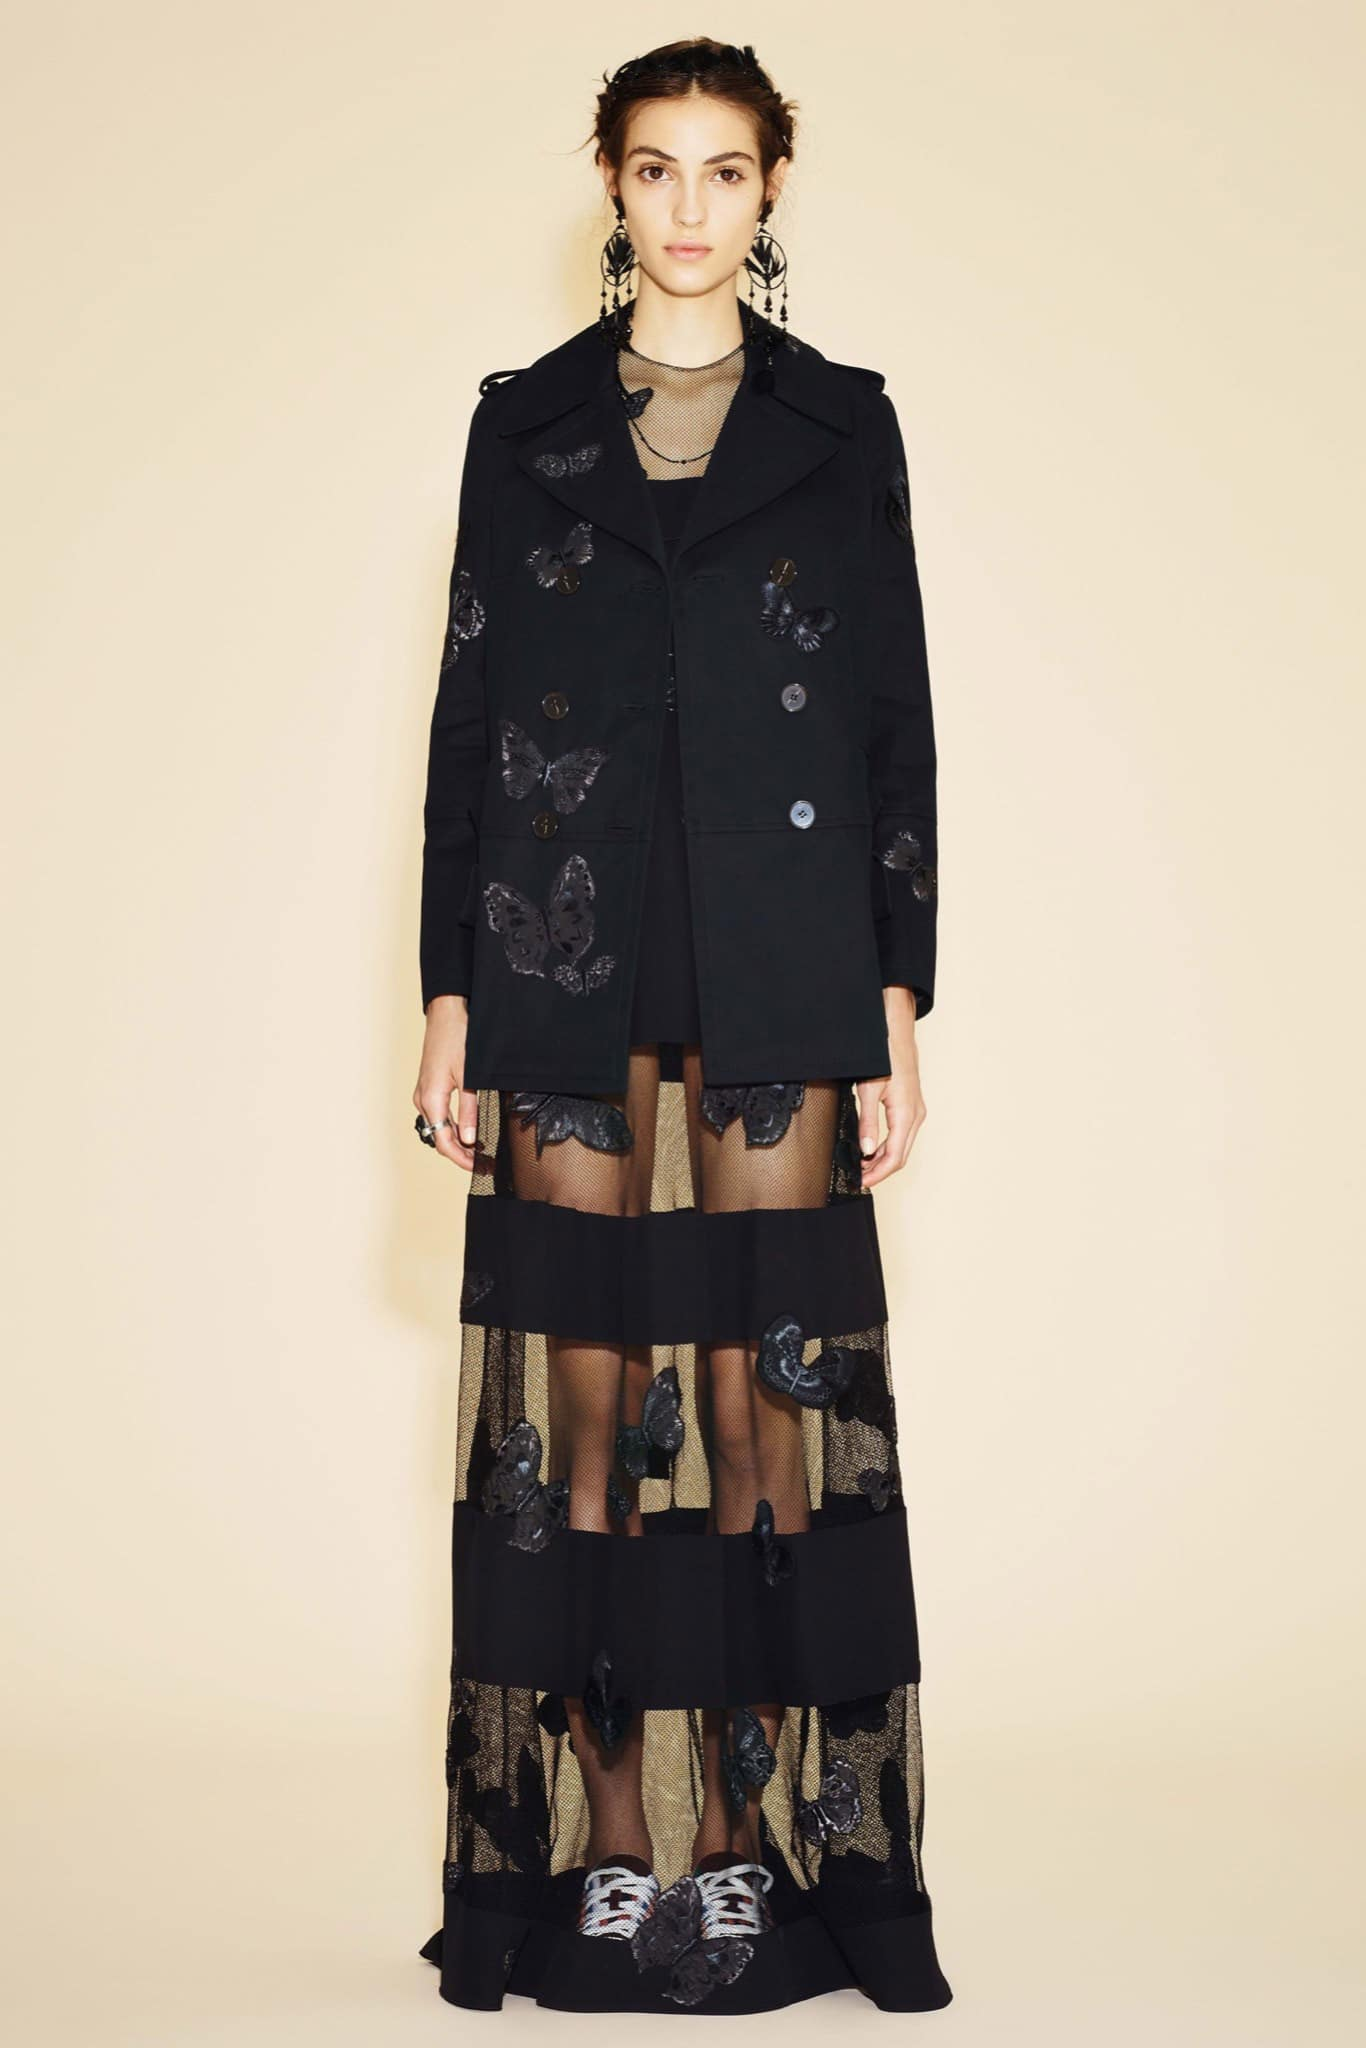 Valentino Resort 2016 Collection Featuring Bold Colors and Prints ...